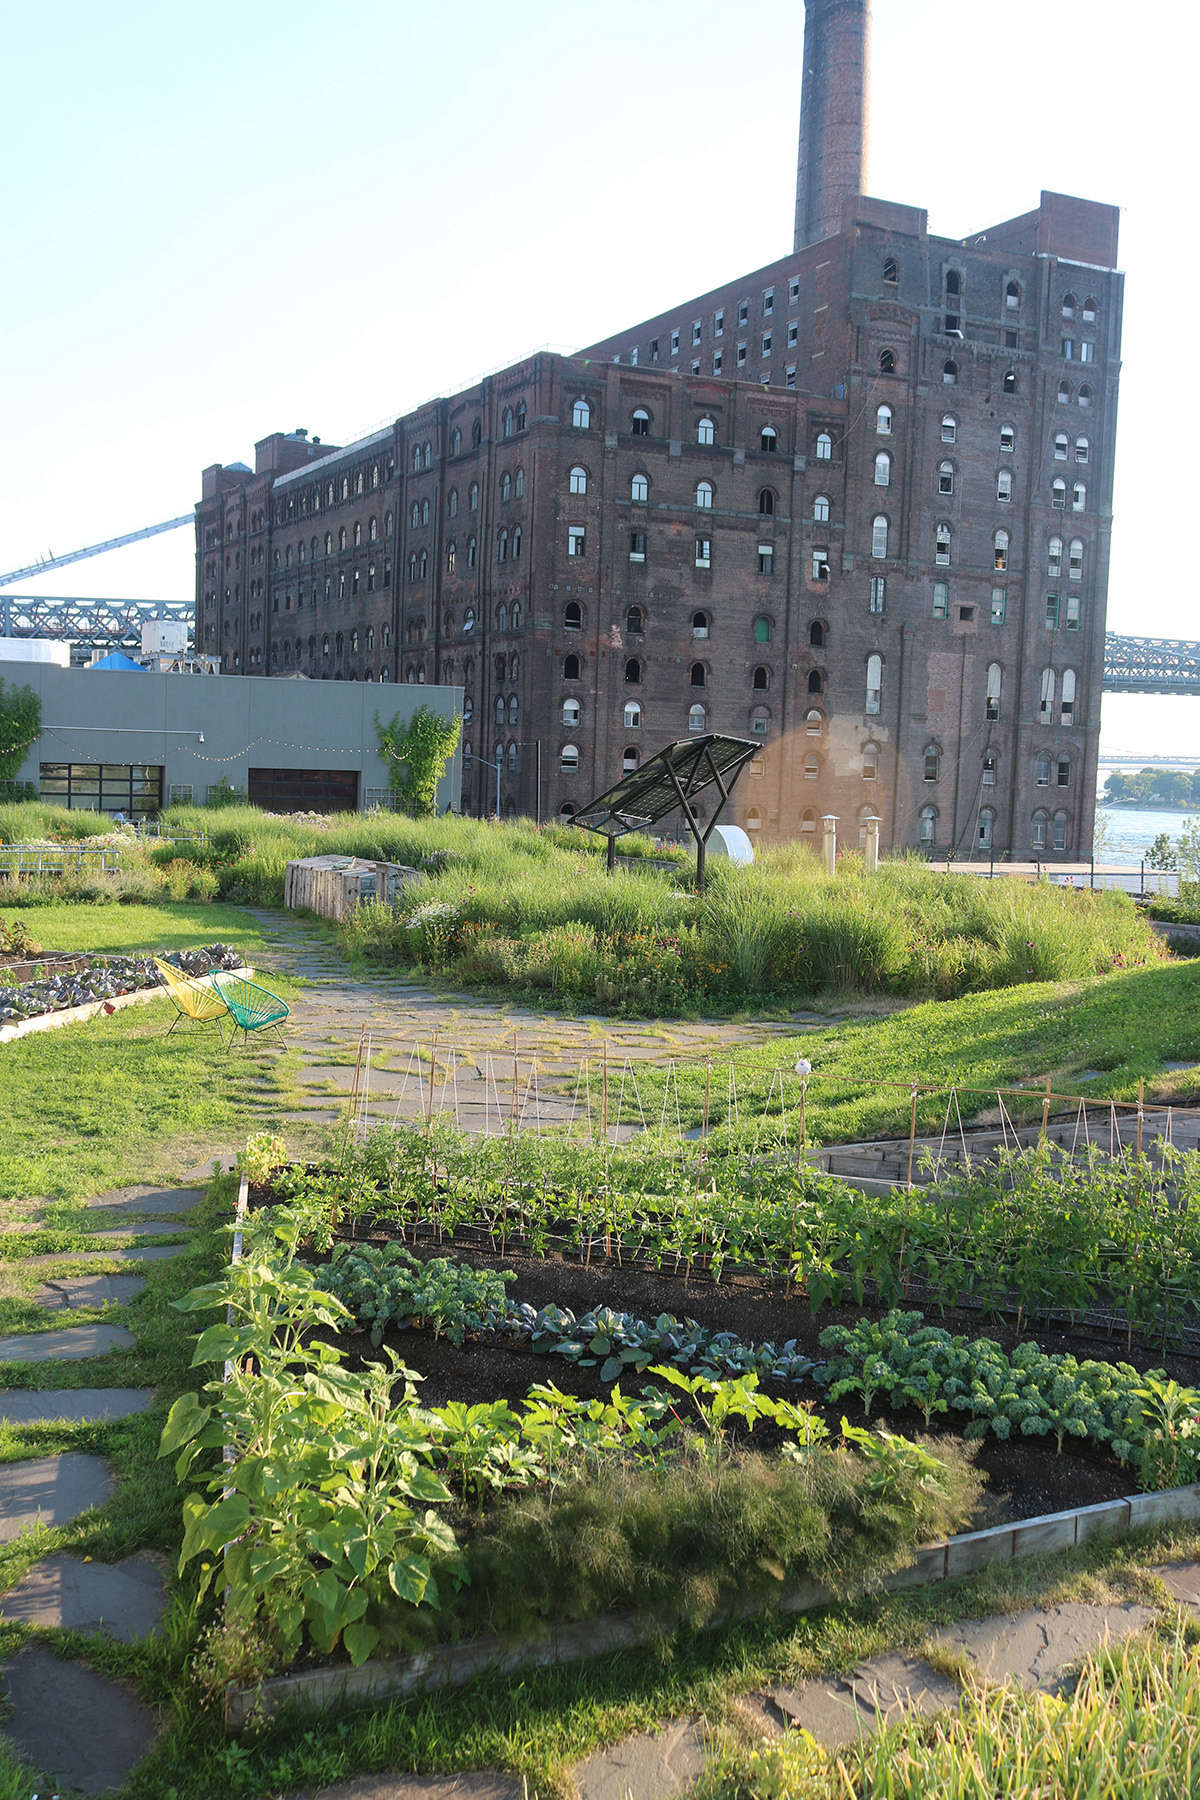 The vegetable garden at the northern end of the space is planted in raised beds, with a depth of about 12 inches.